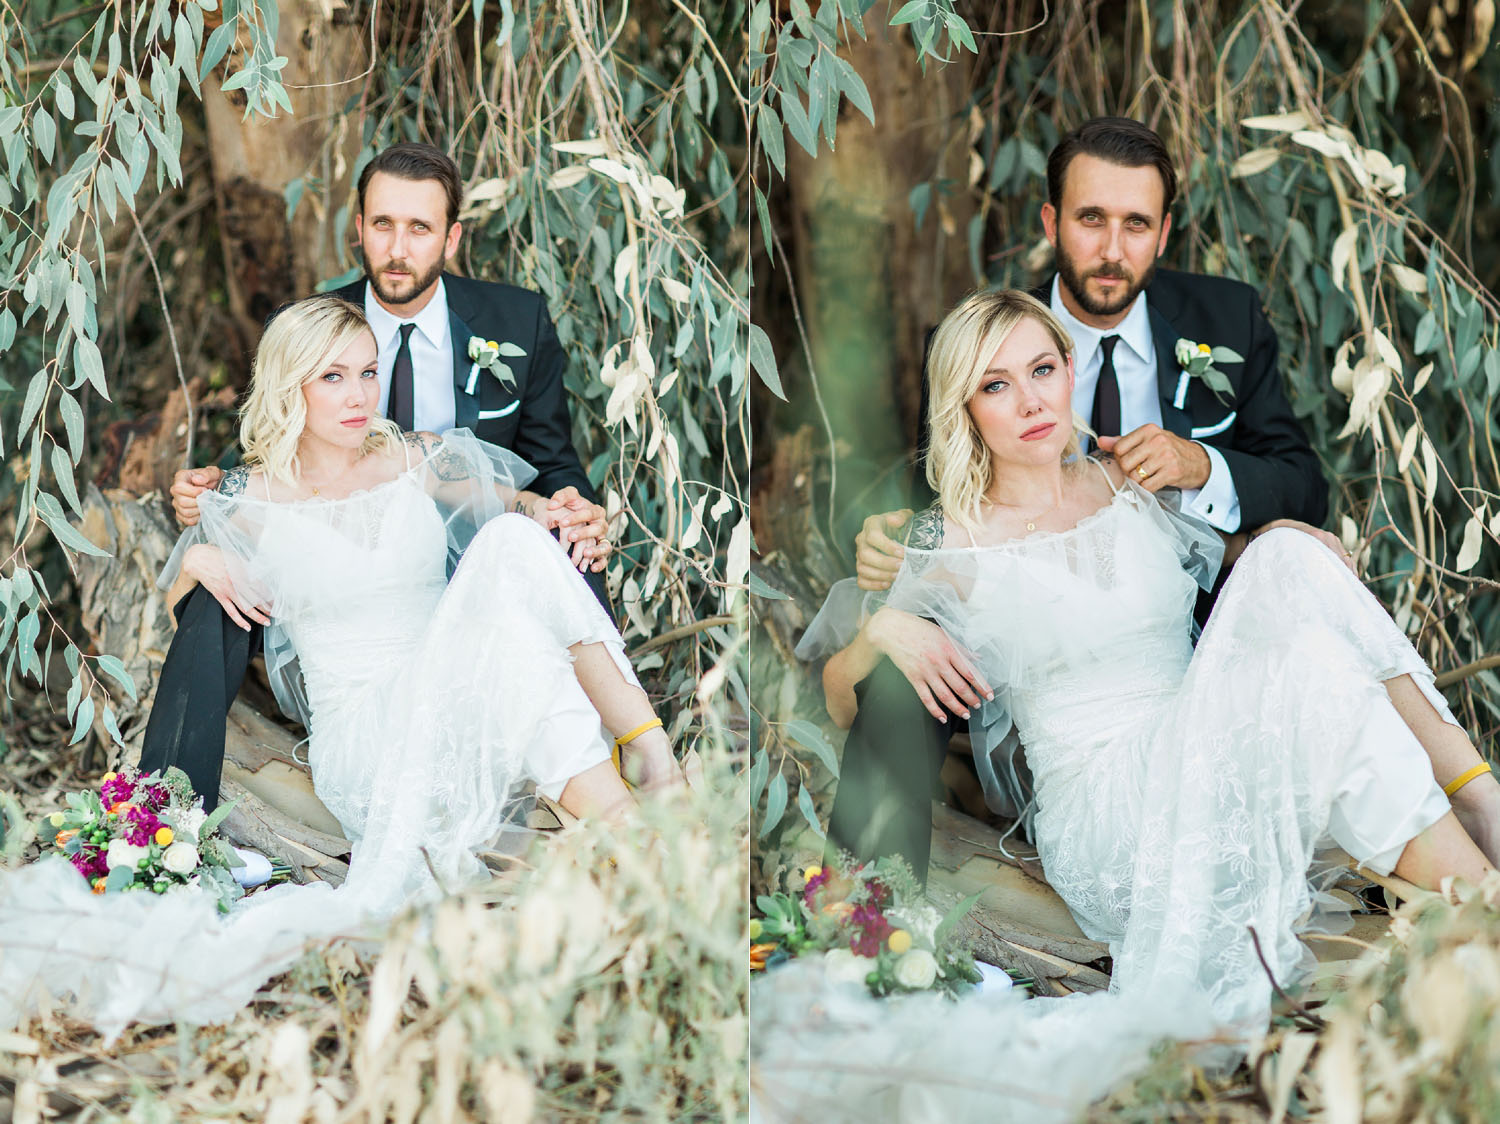 The Photege - Elegant Boho Wedding on Suburu Farm in Bakersfield California- Cassie and Darin Buoni-3019